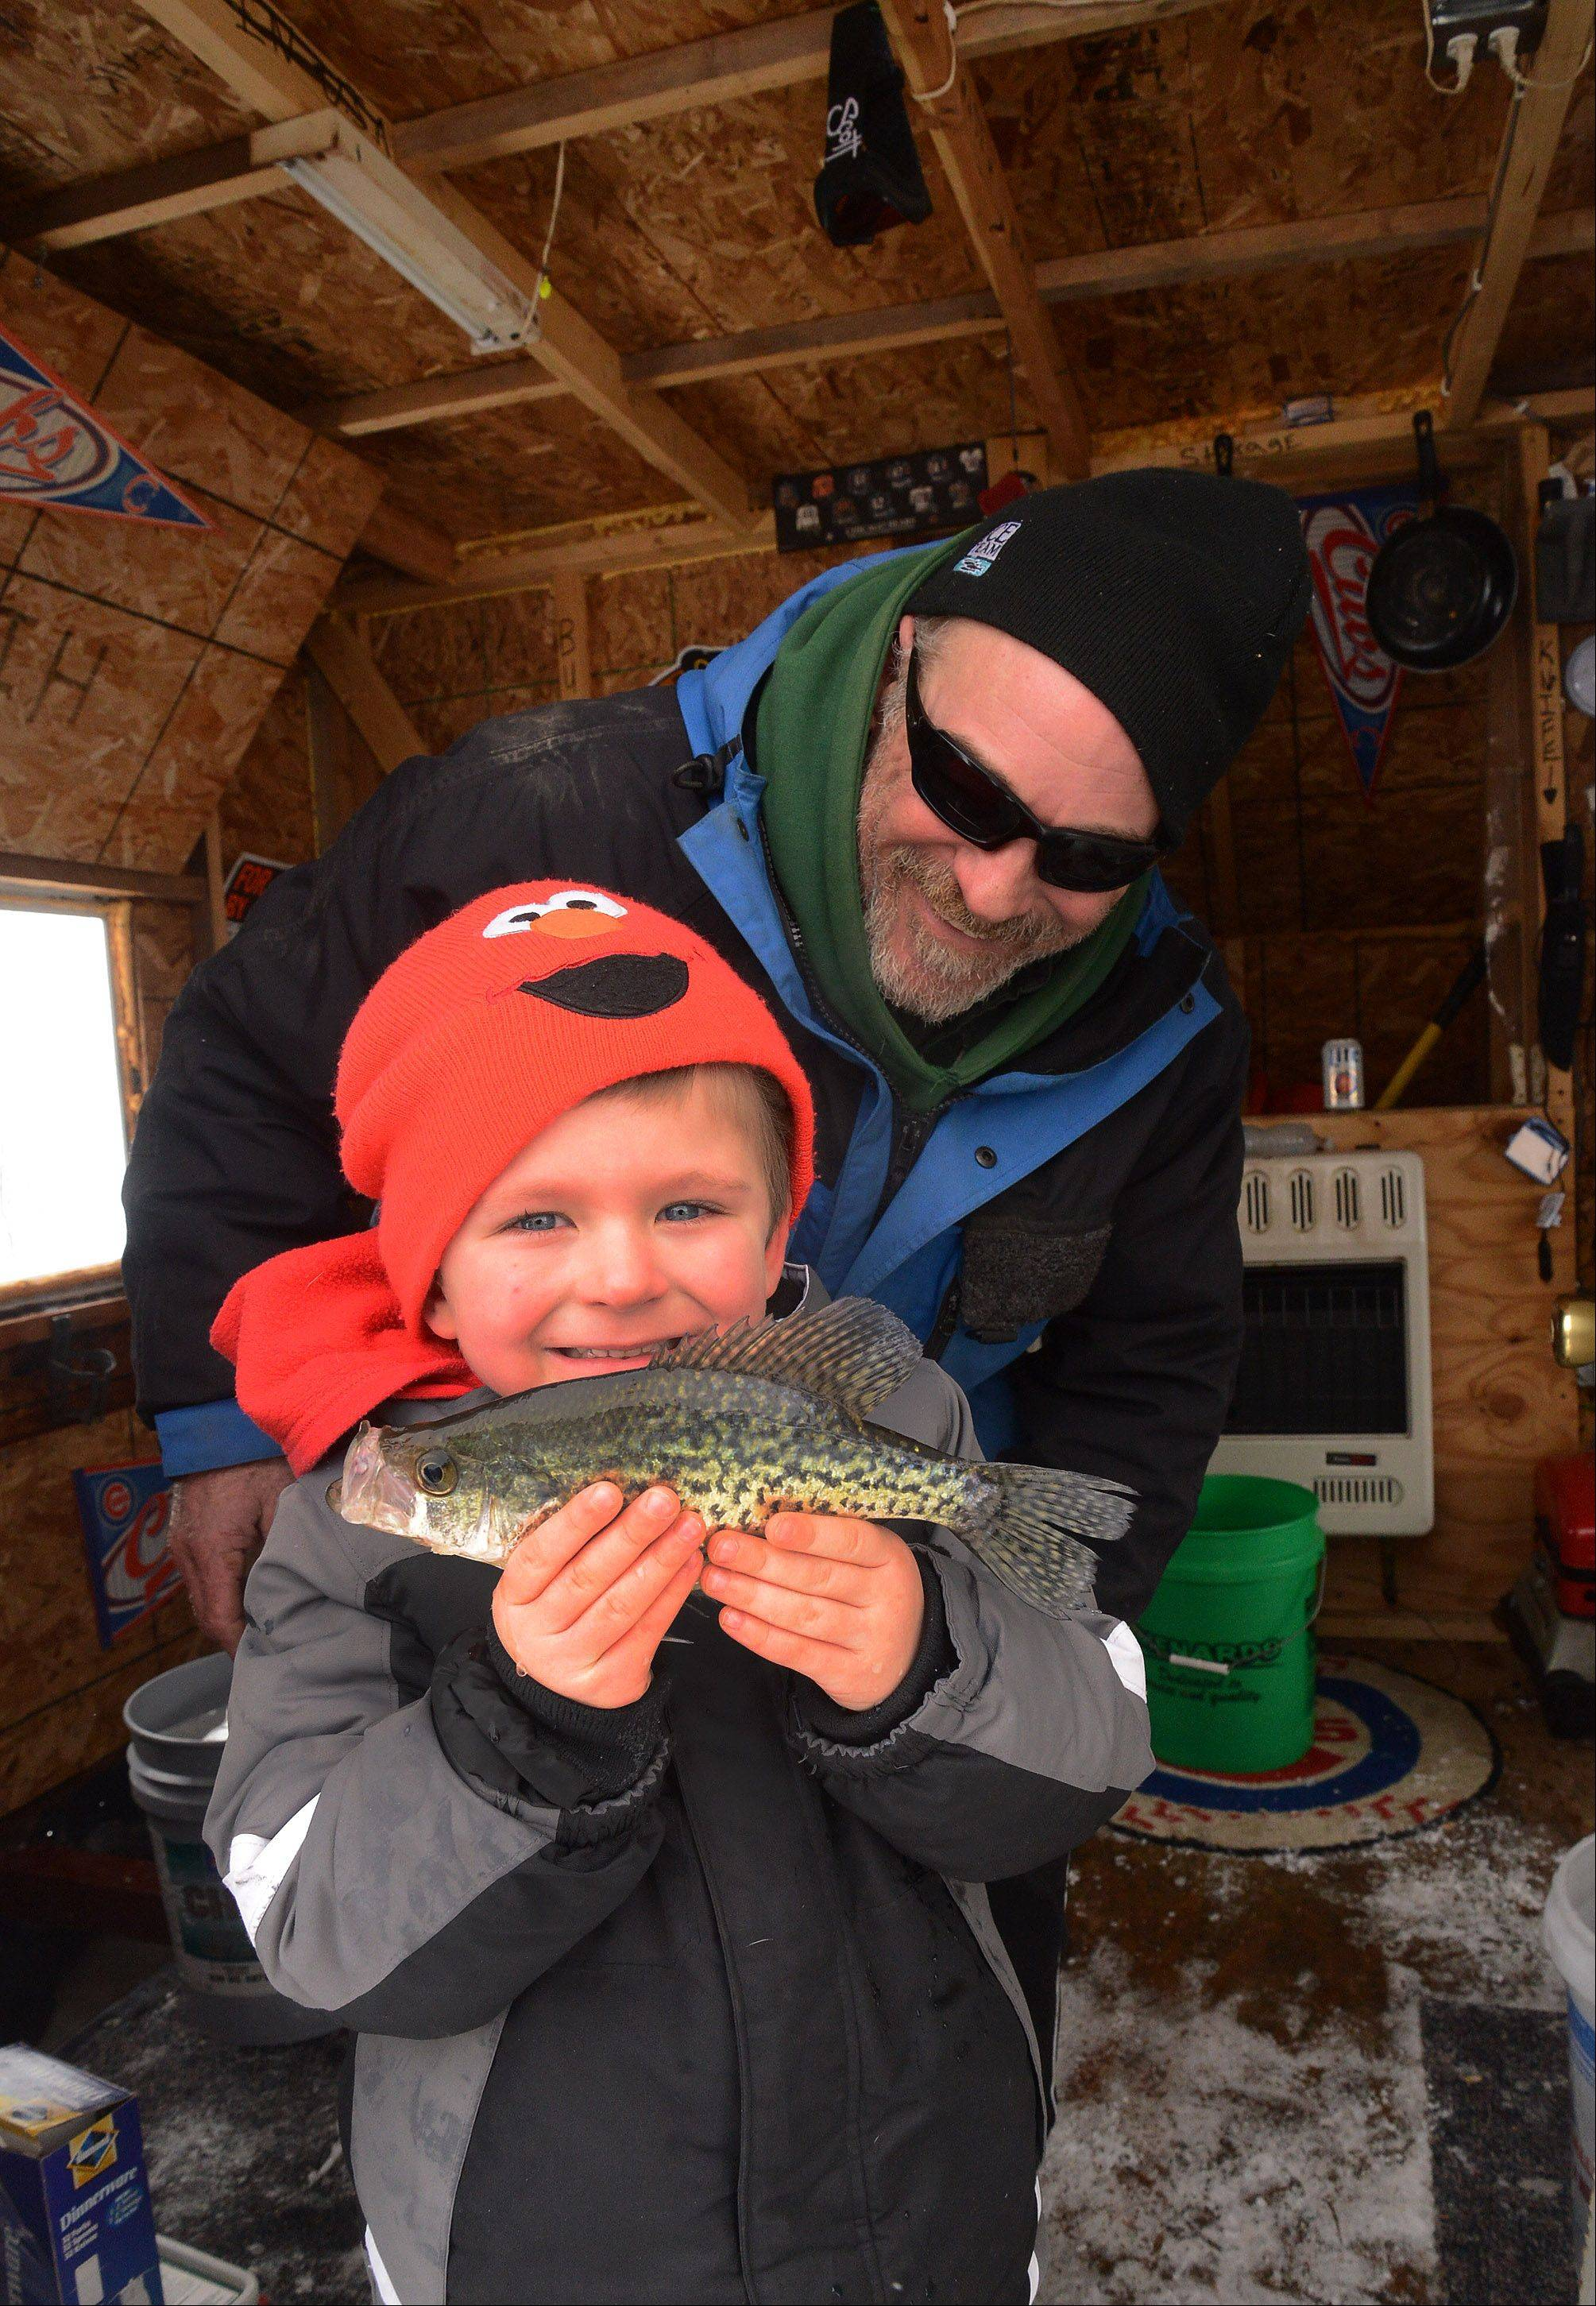 Devan Marcomb, 5, holds up a crappie he caught with his uncle Bob Kiesgen, both from Antioch, Saturday at the 54th Annual Chain O� Lakes Fishing Derby at the Thirsty Turtle in Antioch.